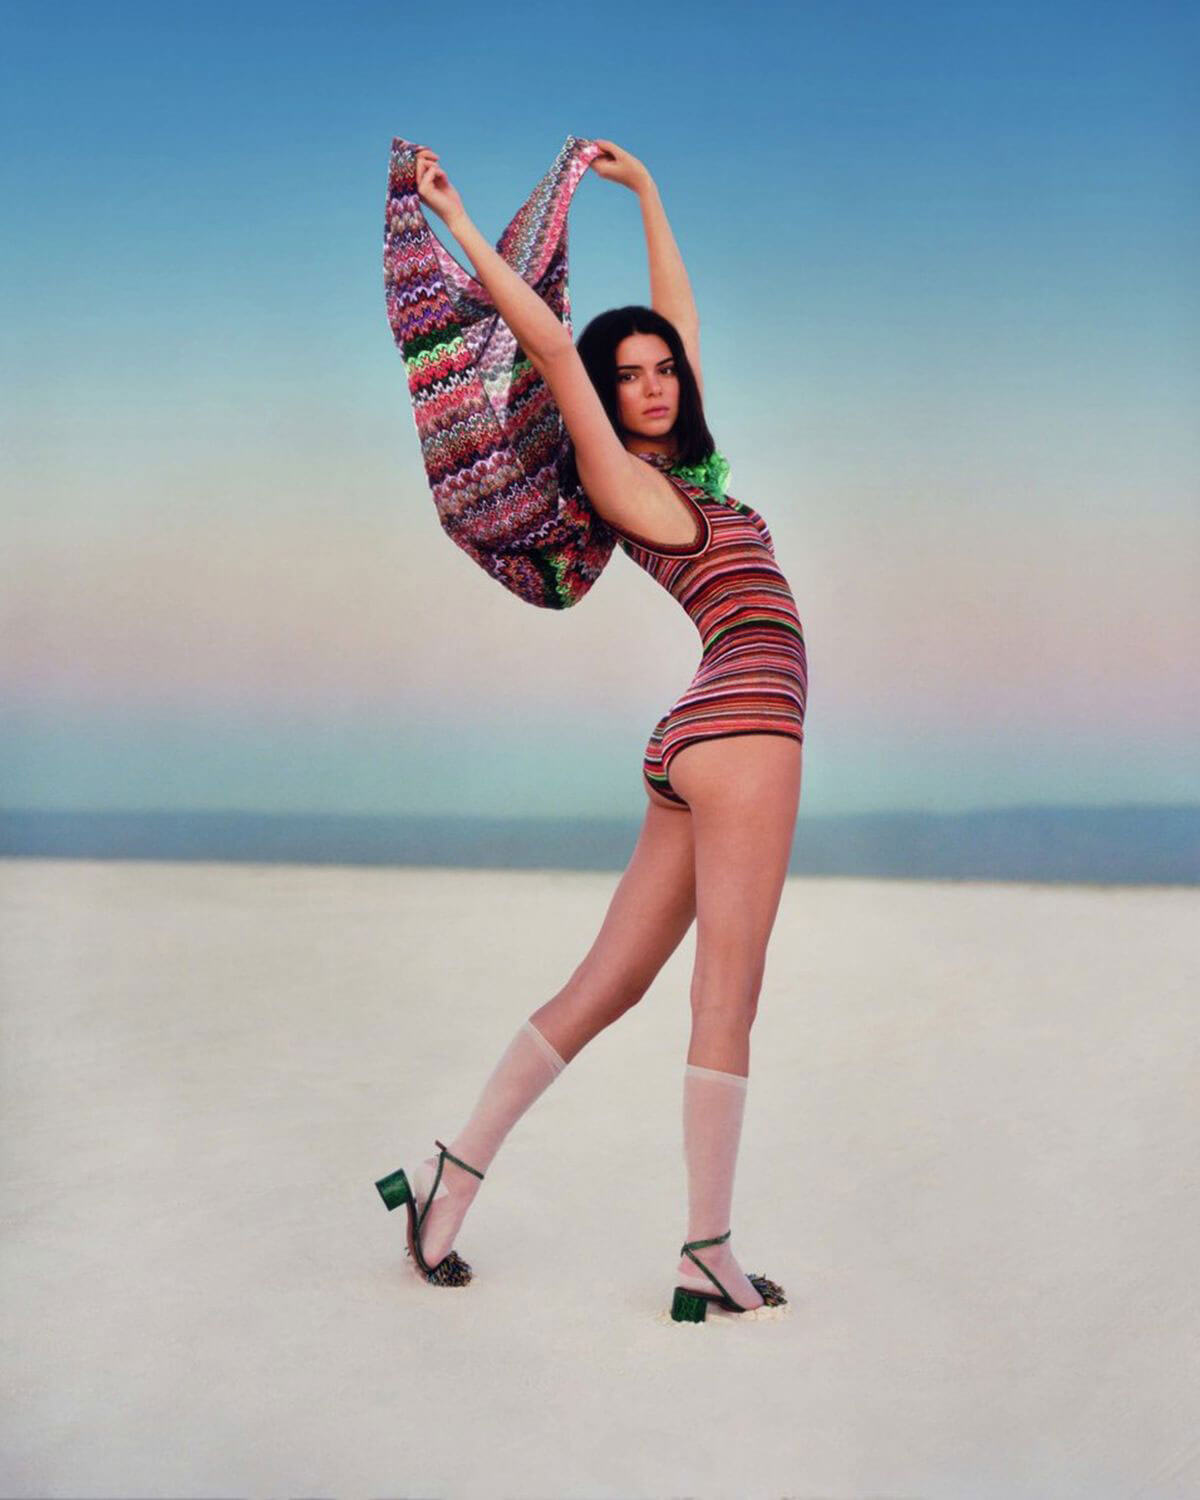 Kendall Jenner Poses for Missoni Spring/Summer 2018 Campaign Photos